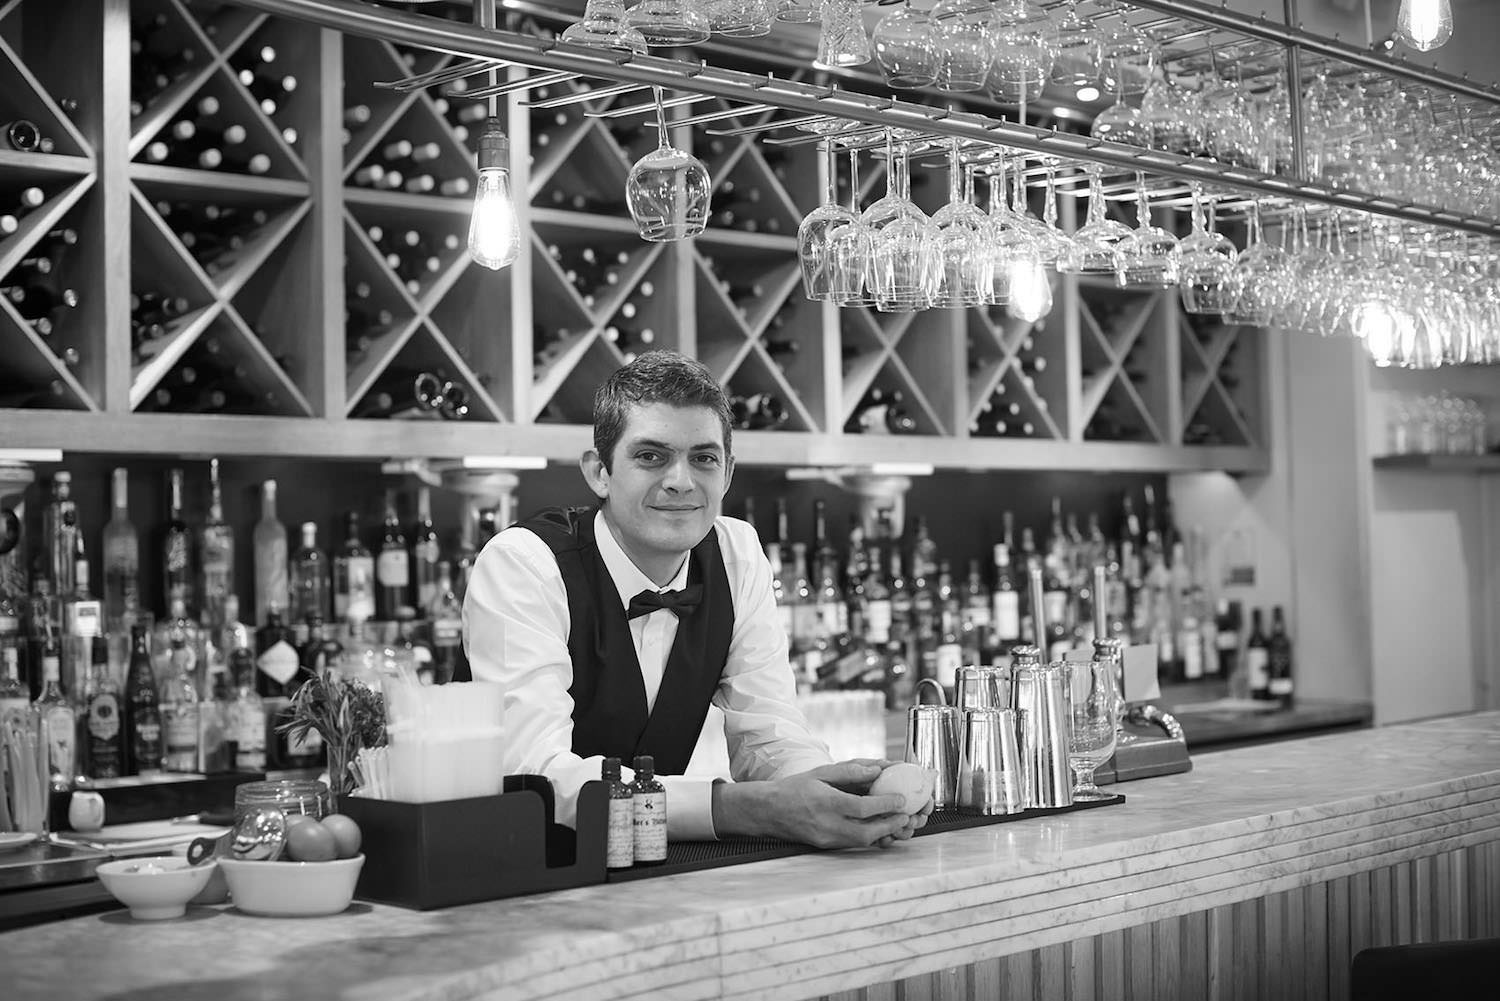 """Merlin Griffiths    """"I had an ostentatious way of cutting my pours back then that ended up with a bottle flying across the bar straight into the side of a chaps head!"""""""